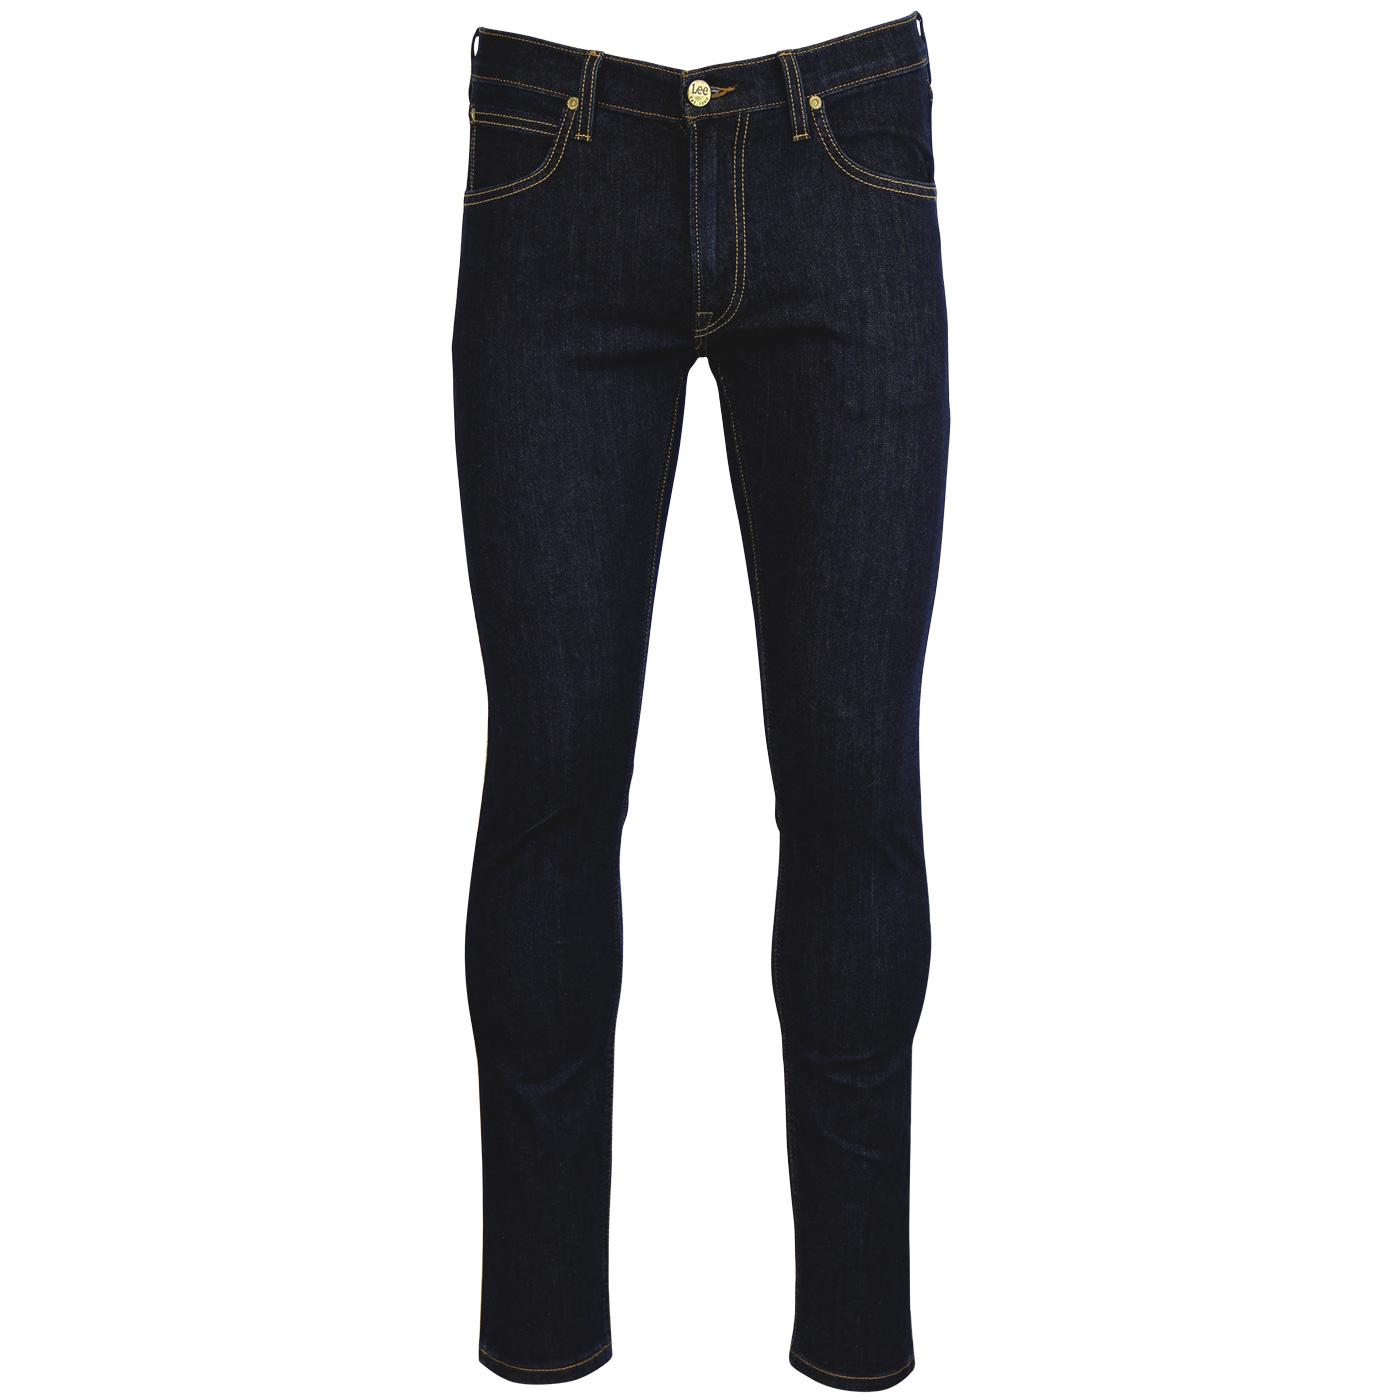 Luke LEE Slim Tapered Retro Mod Denim Jeans RINSE